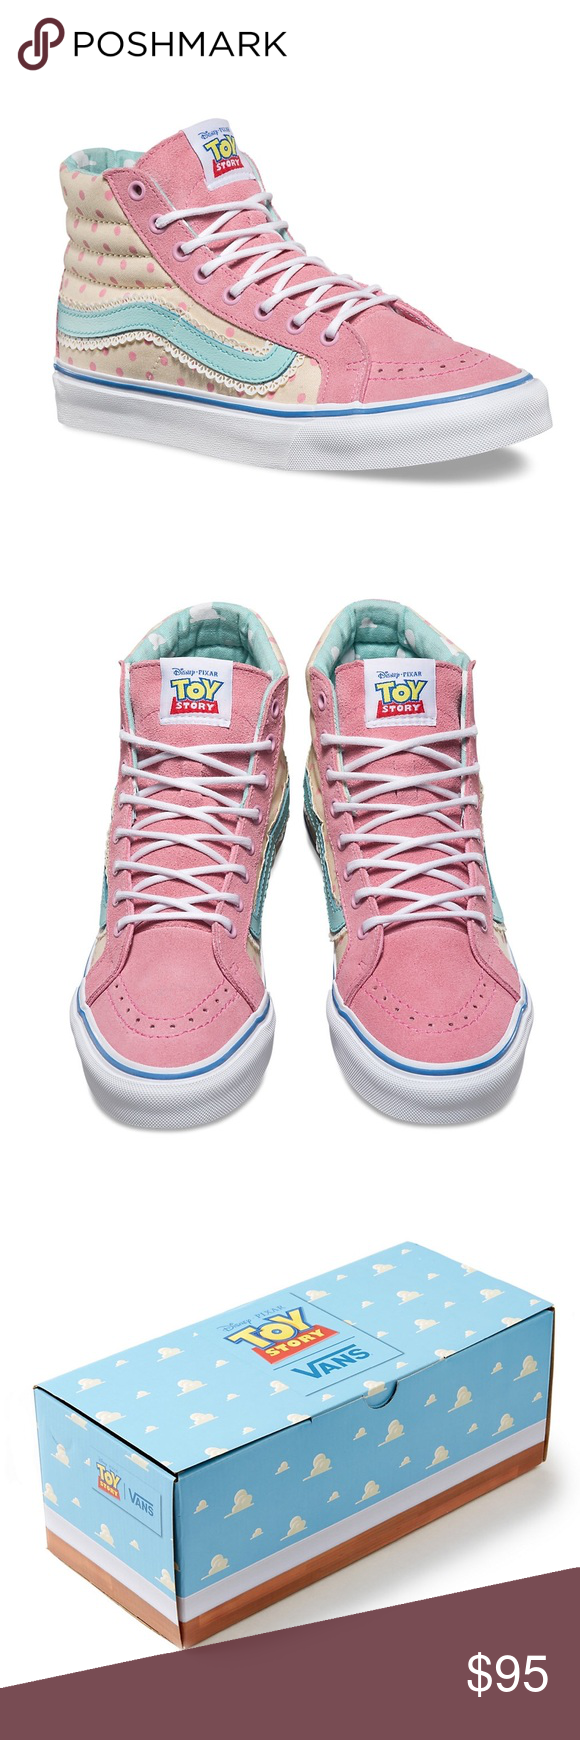 bb40a432565 ✨Bo Peep Vans TOY STORY SK8-HI SLIM ✨ SOLD OUT   Limited Edition ...